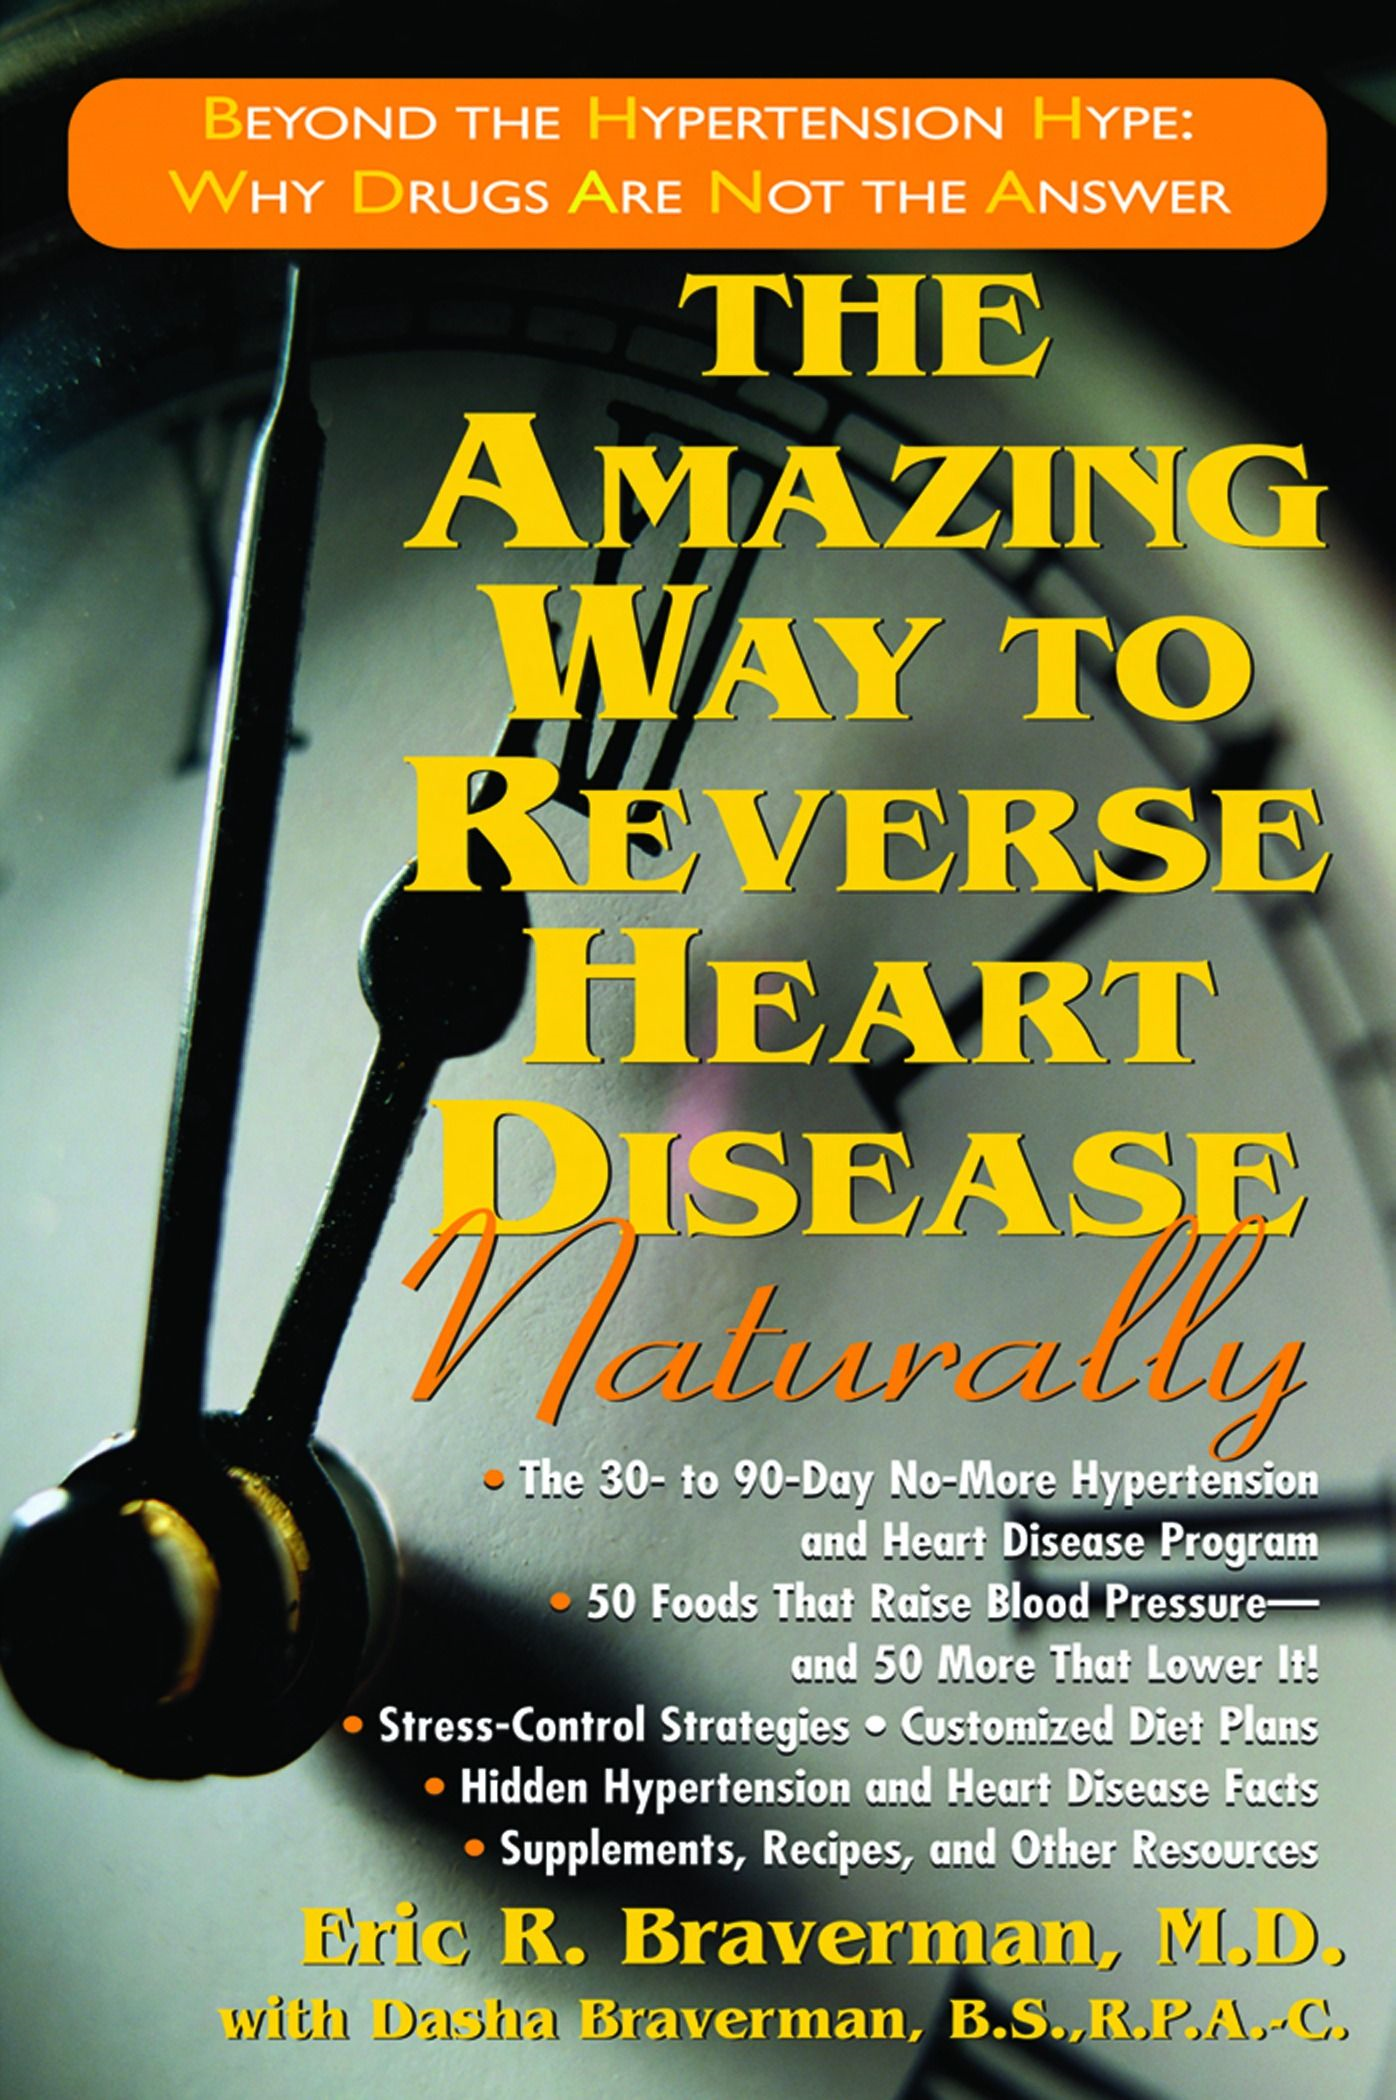 The Amazing Way To Reverse Heart Disease Naturally : Beyond The Hypertension Hype: Why Drugs Are Not The Answer